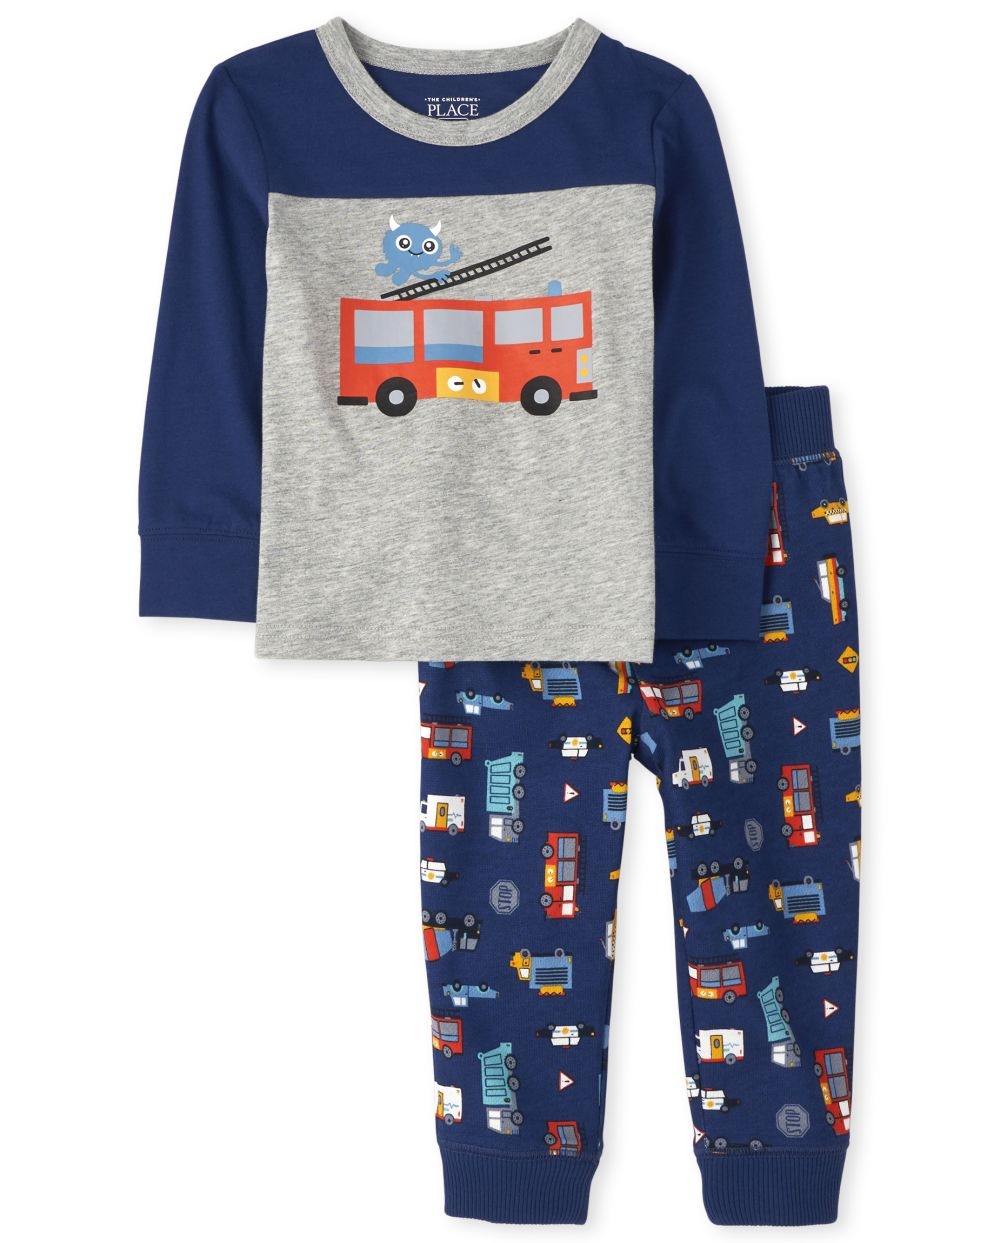 Baby And Toddler Boys Fire Truck Outfit Set